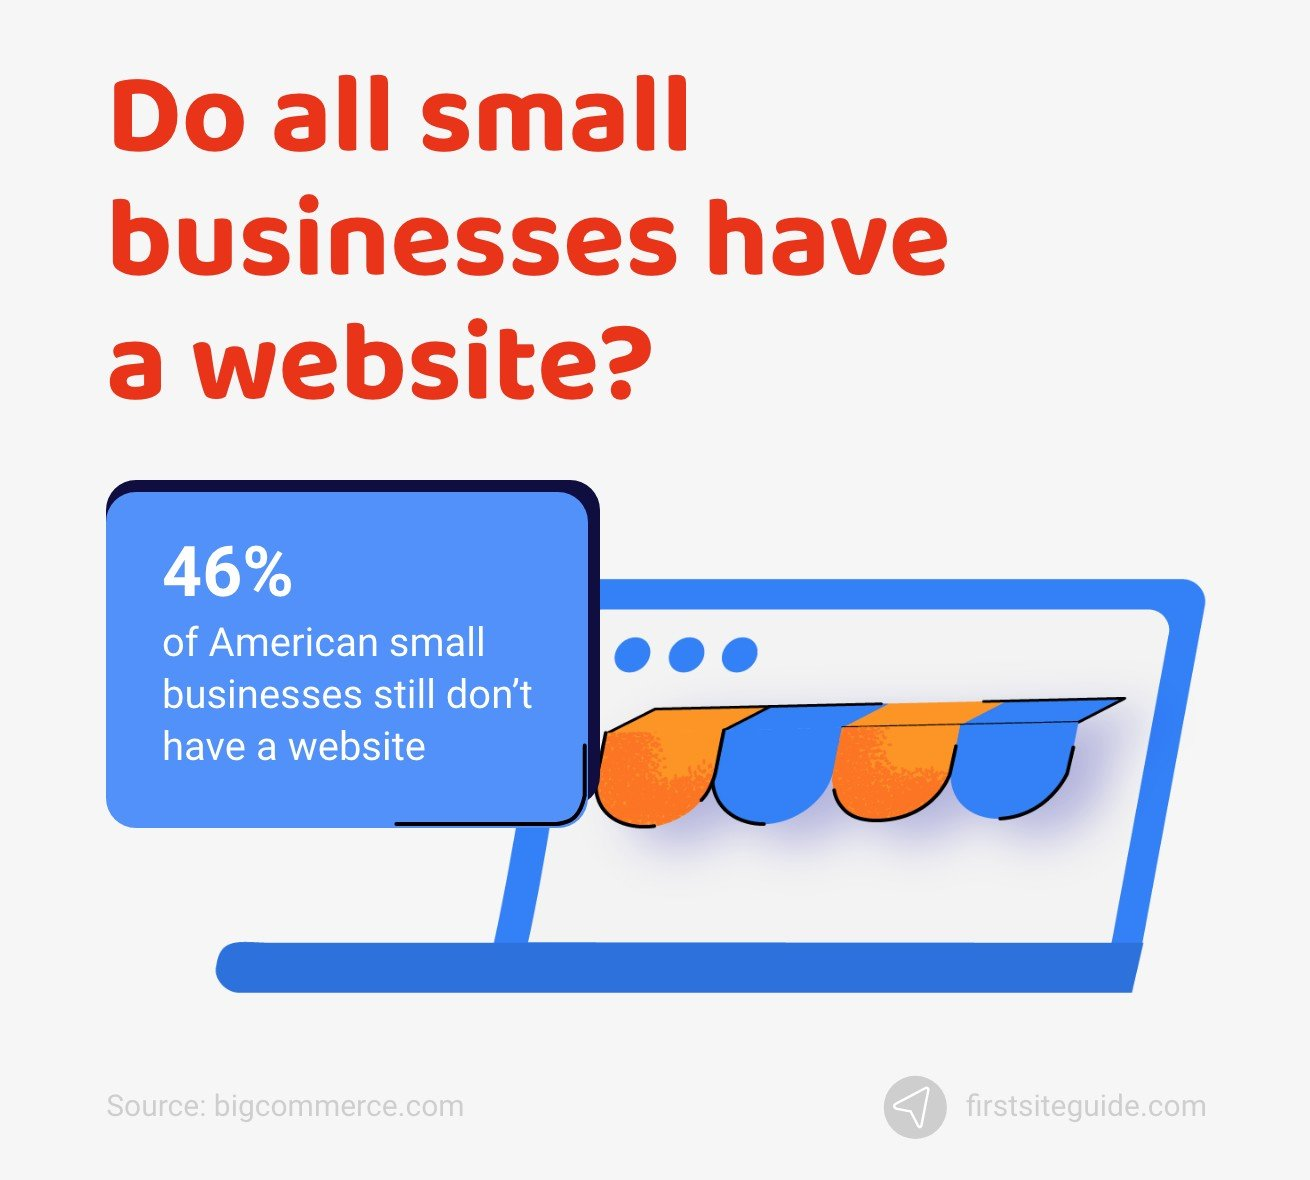 Do all small businesses have a website?